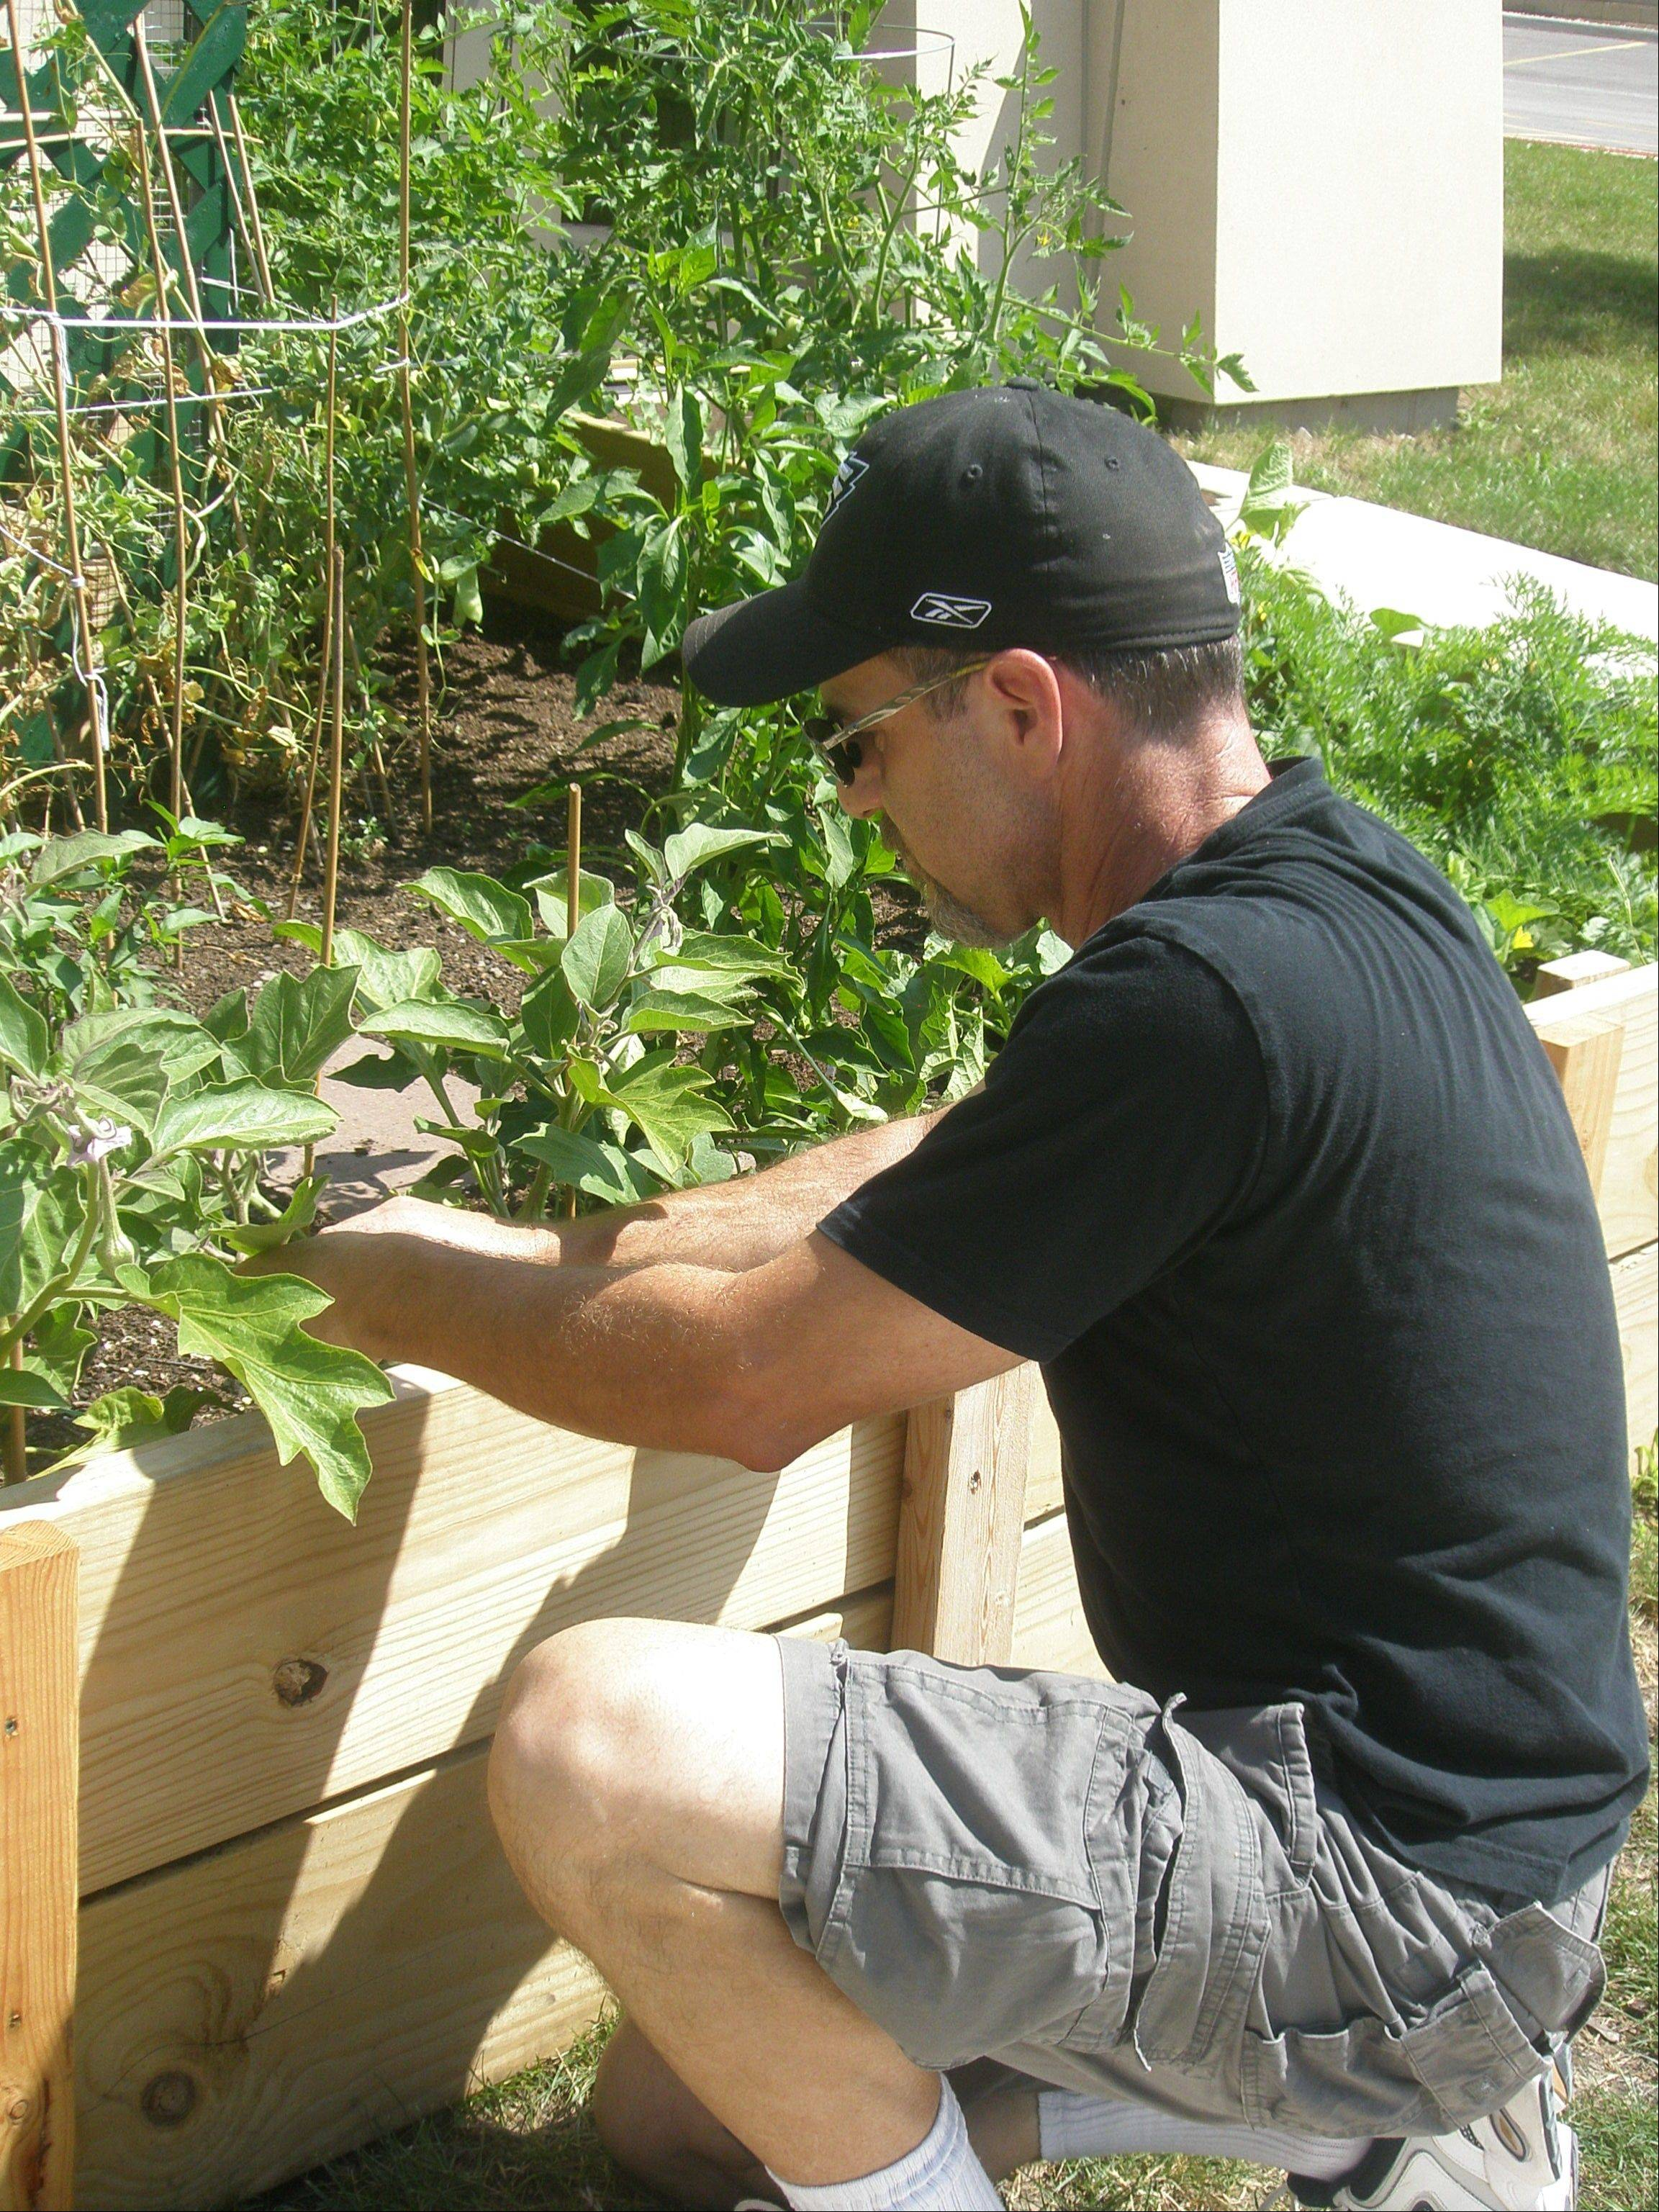 John Katz-Mariani of Vernon Hills tends the Mitzvah garden behind the Congregation Or Shalom community temple in Vernon Hills.